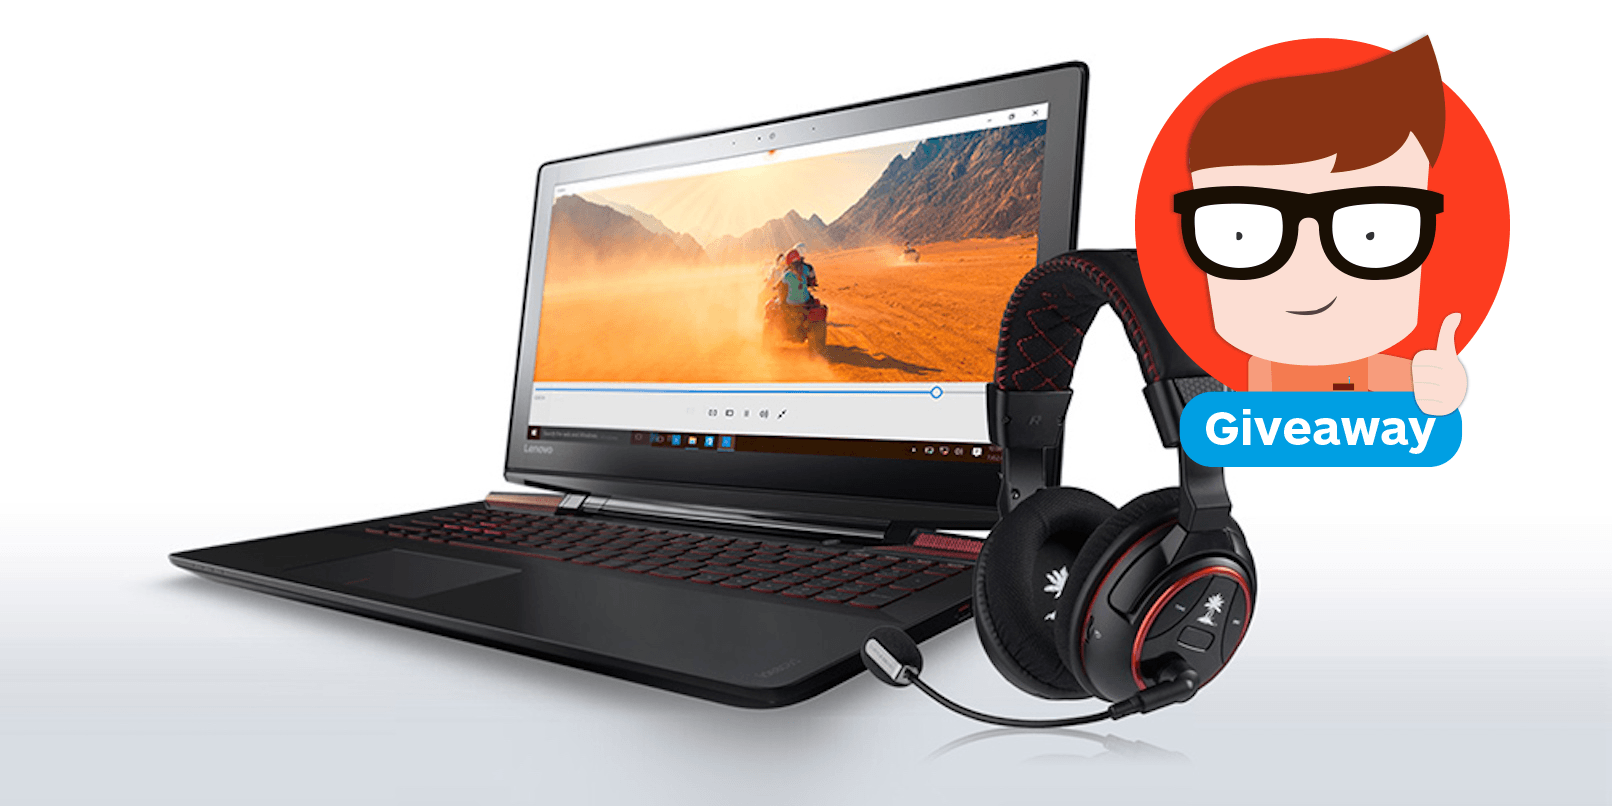 lenovo giveaway gamer giveaway win a lenovo ideapad turtle beach headset 3197